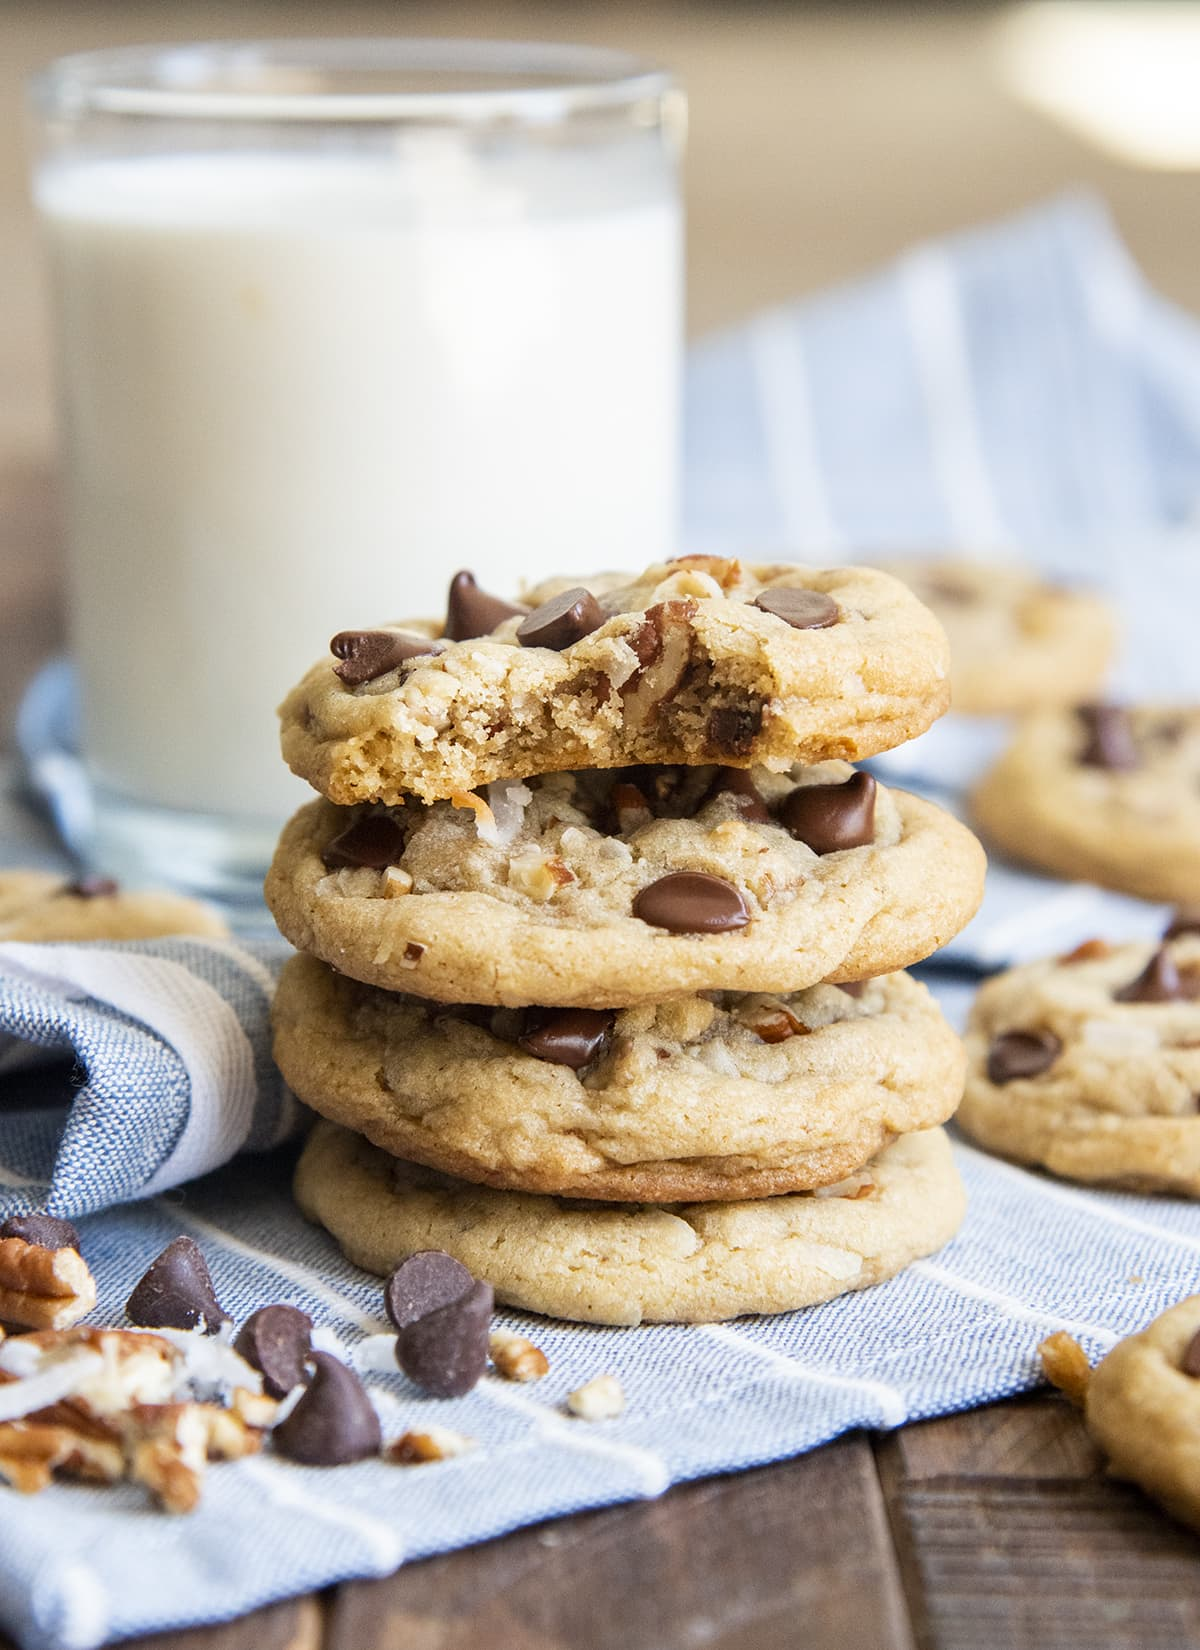 A stack of 4 drop style cookies with chocolate chips, pecans, and shredded coconut. The top cookie has a bite taken out of it.